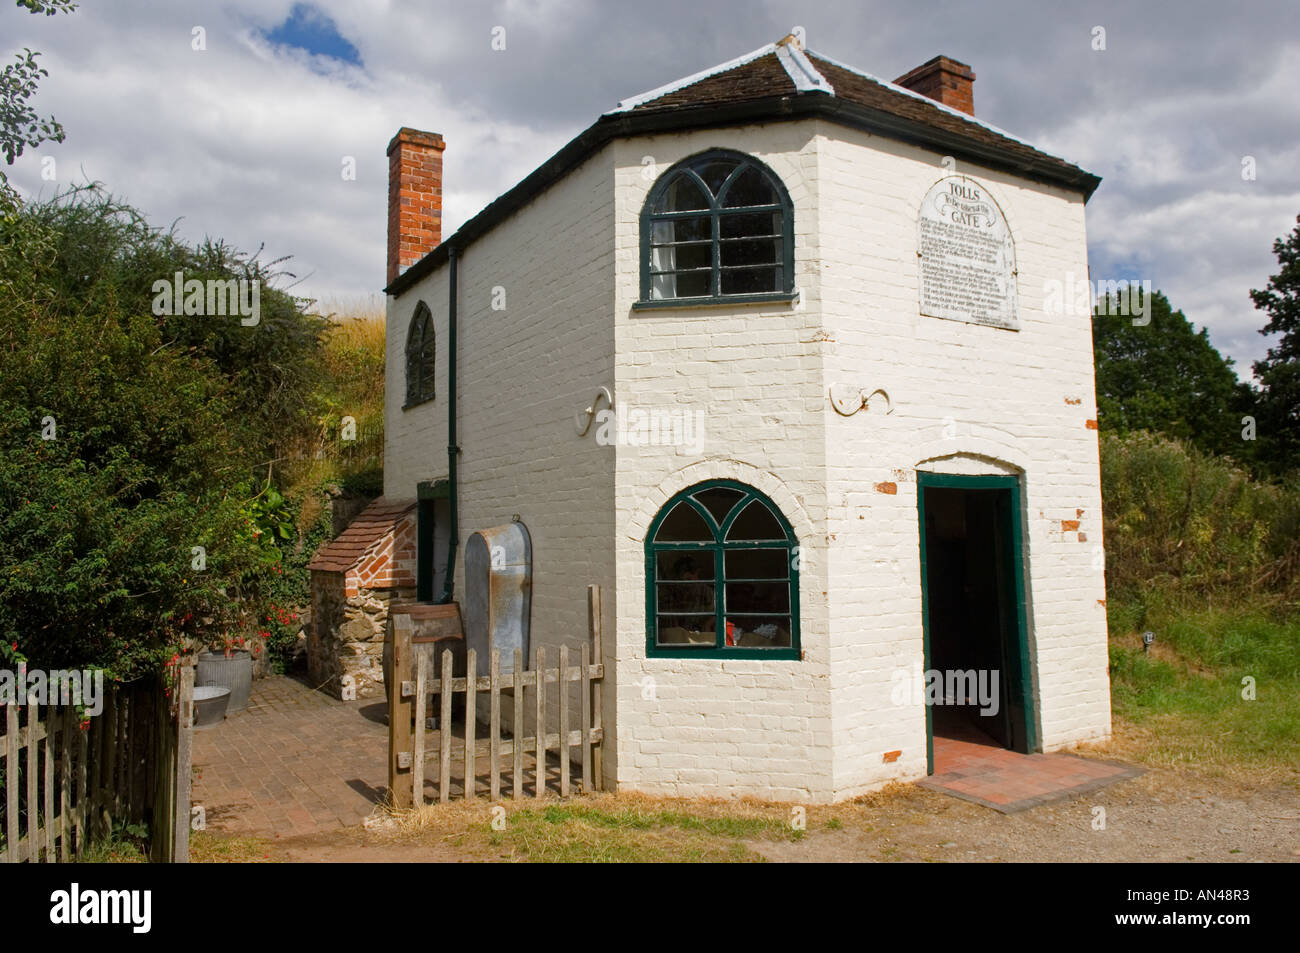 The Toll Gate house at Avoncroft museum in Worcestershire West Midlands - Stock Image